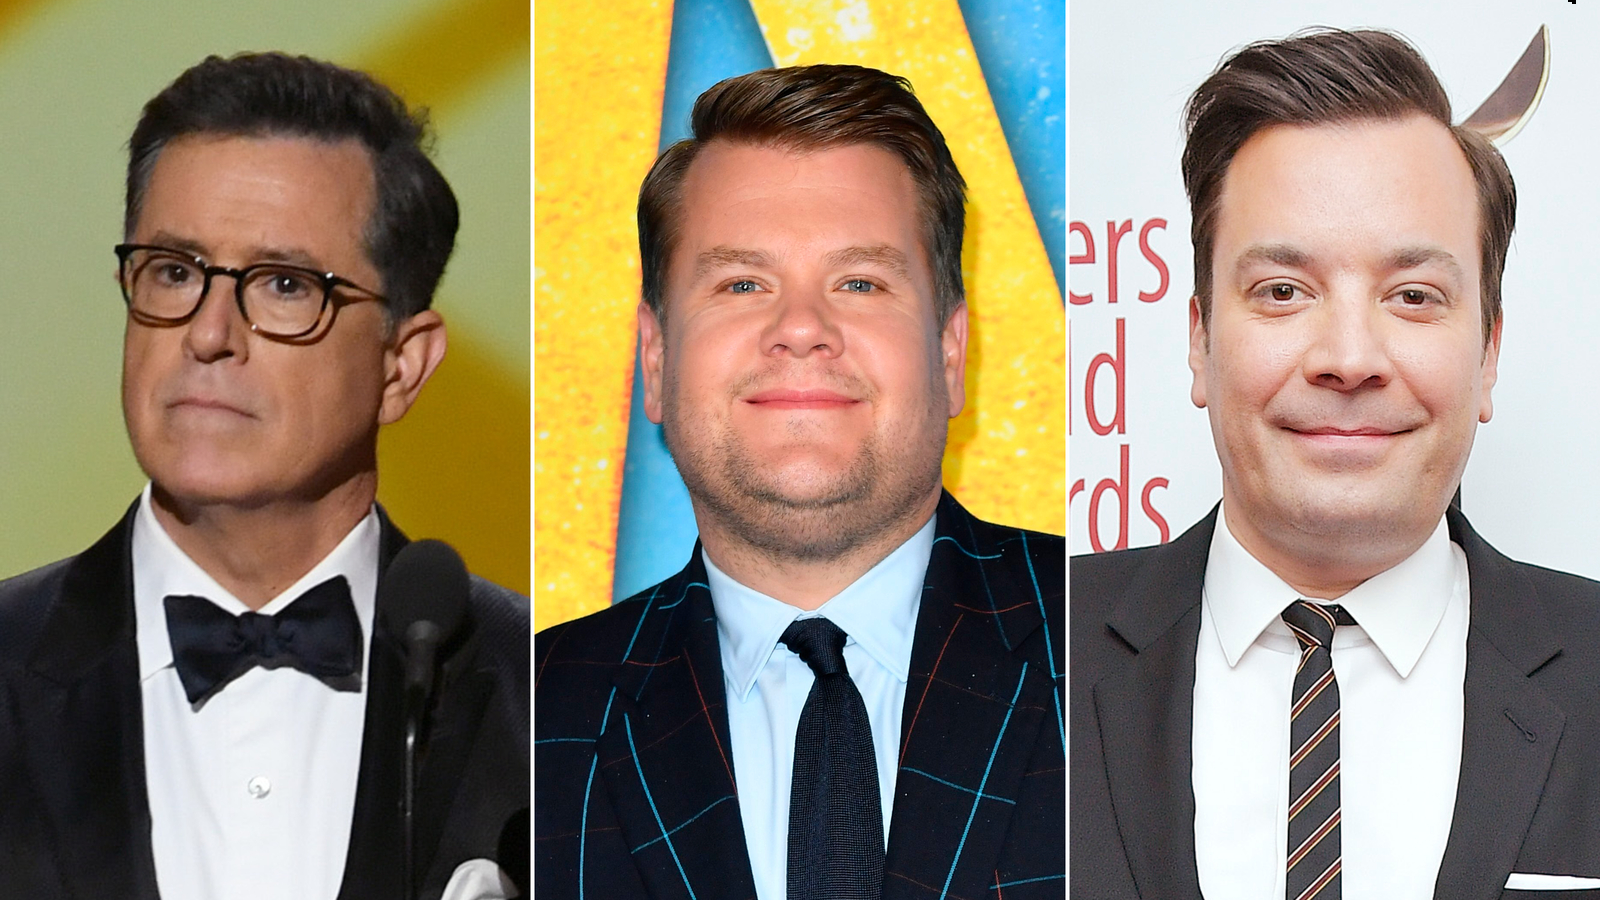 Stephen Colbert, James Corden and Jimmy Fallon head back to studios with caution